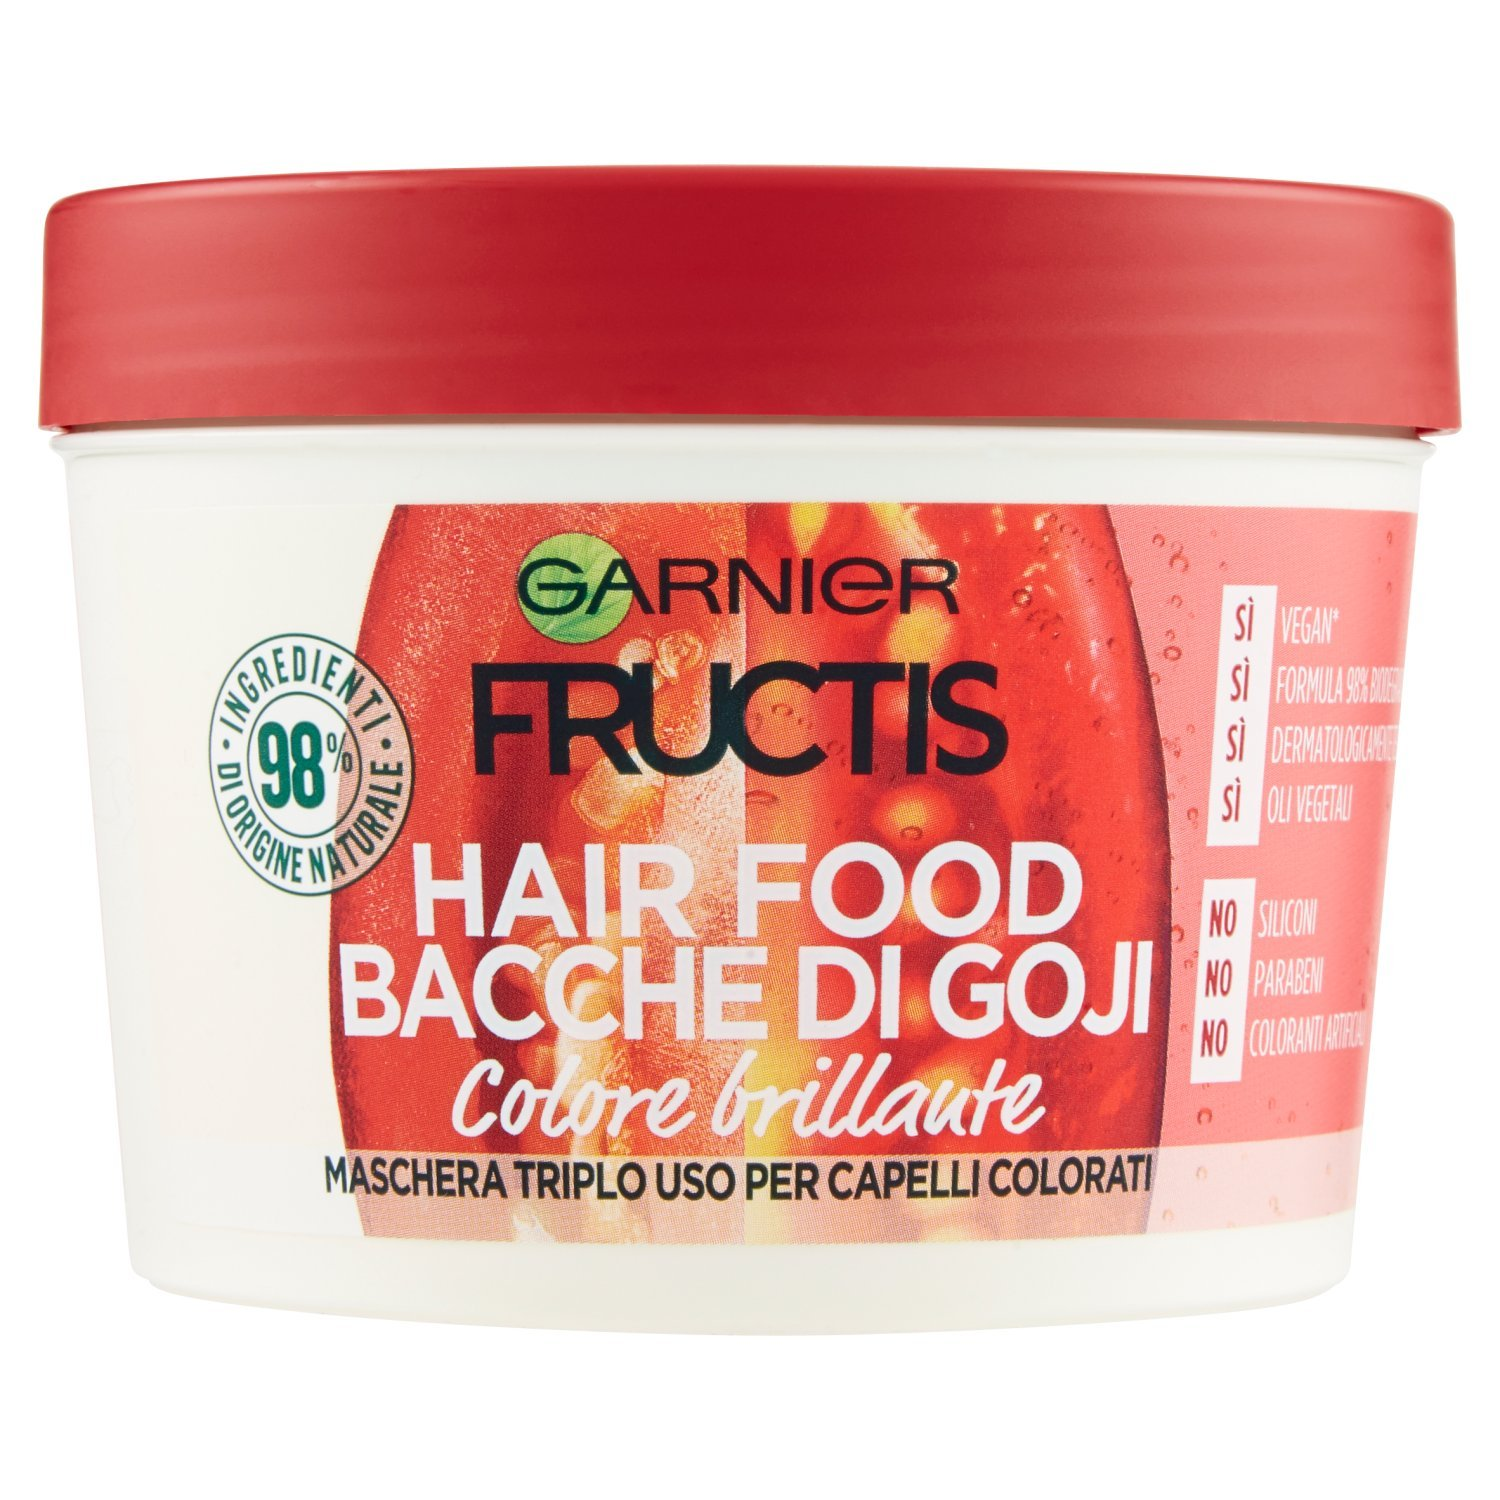 Bacche di Goji 3 in 1 Fructis HairFood Bacche di Goji 390ml